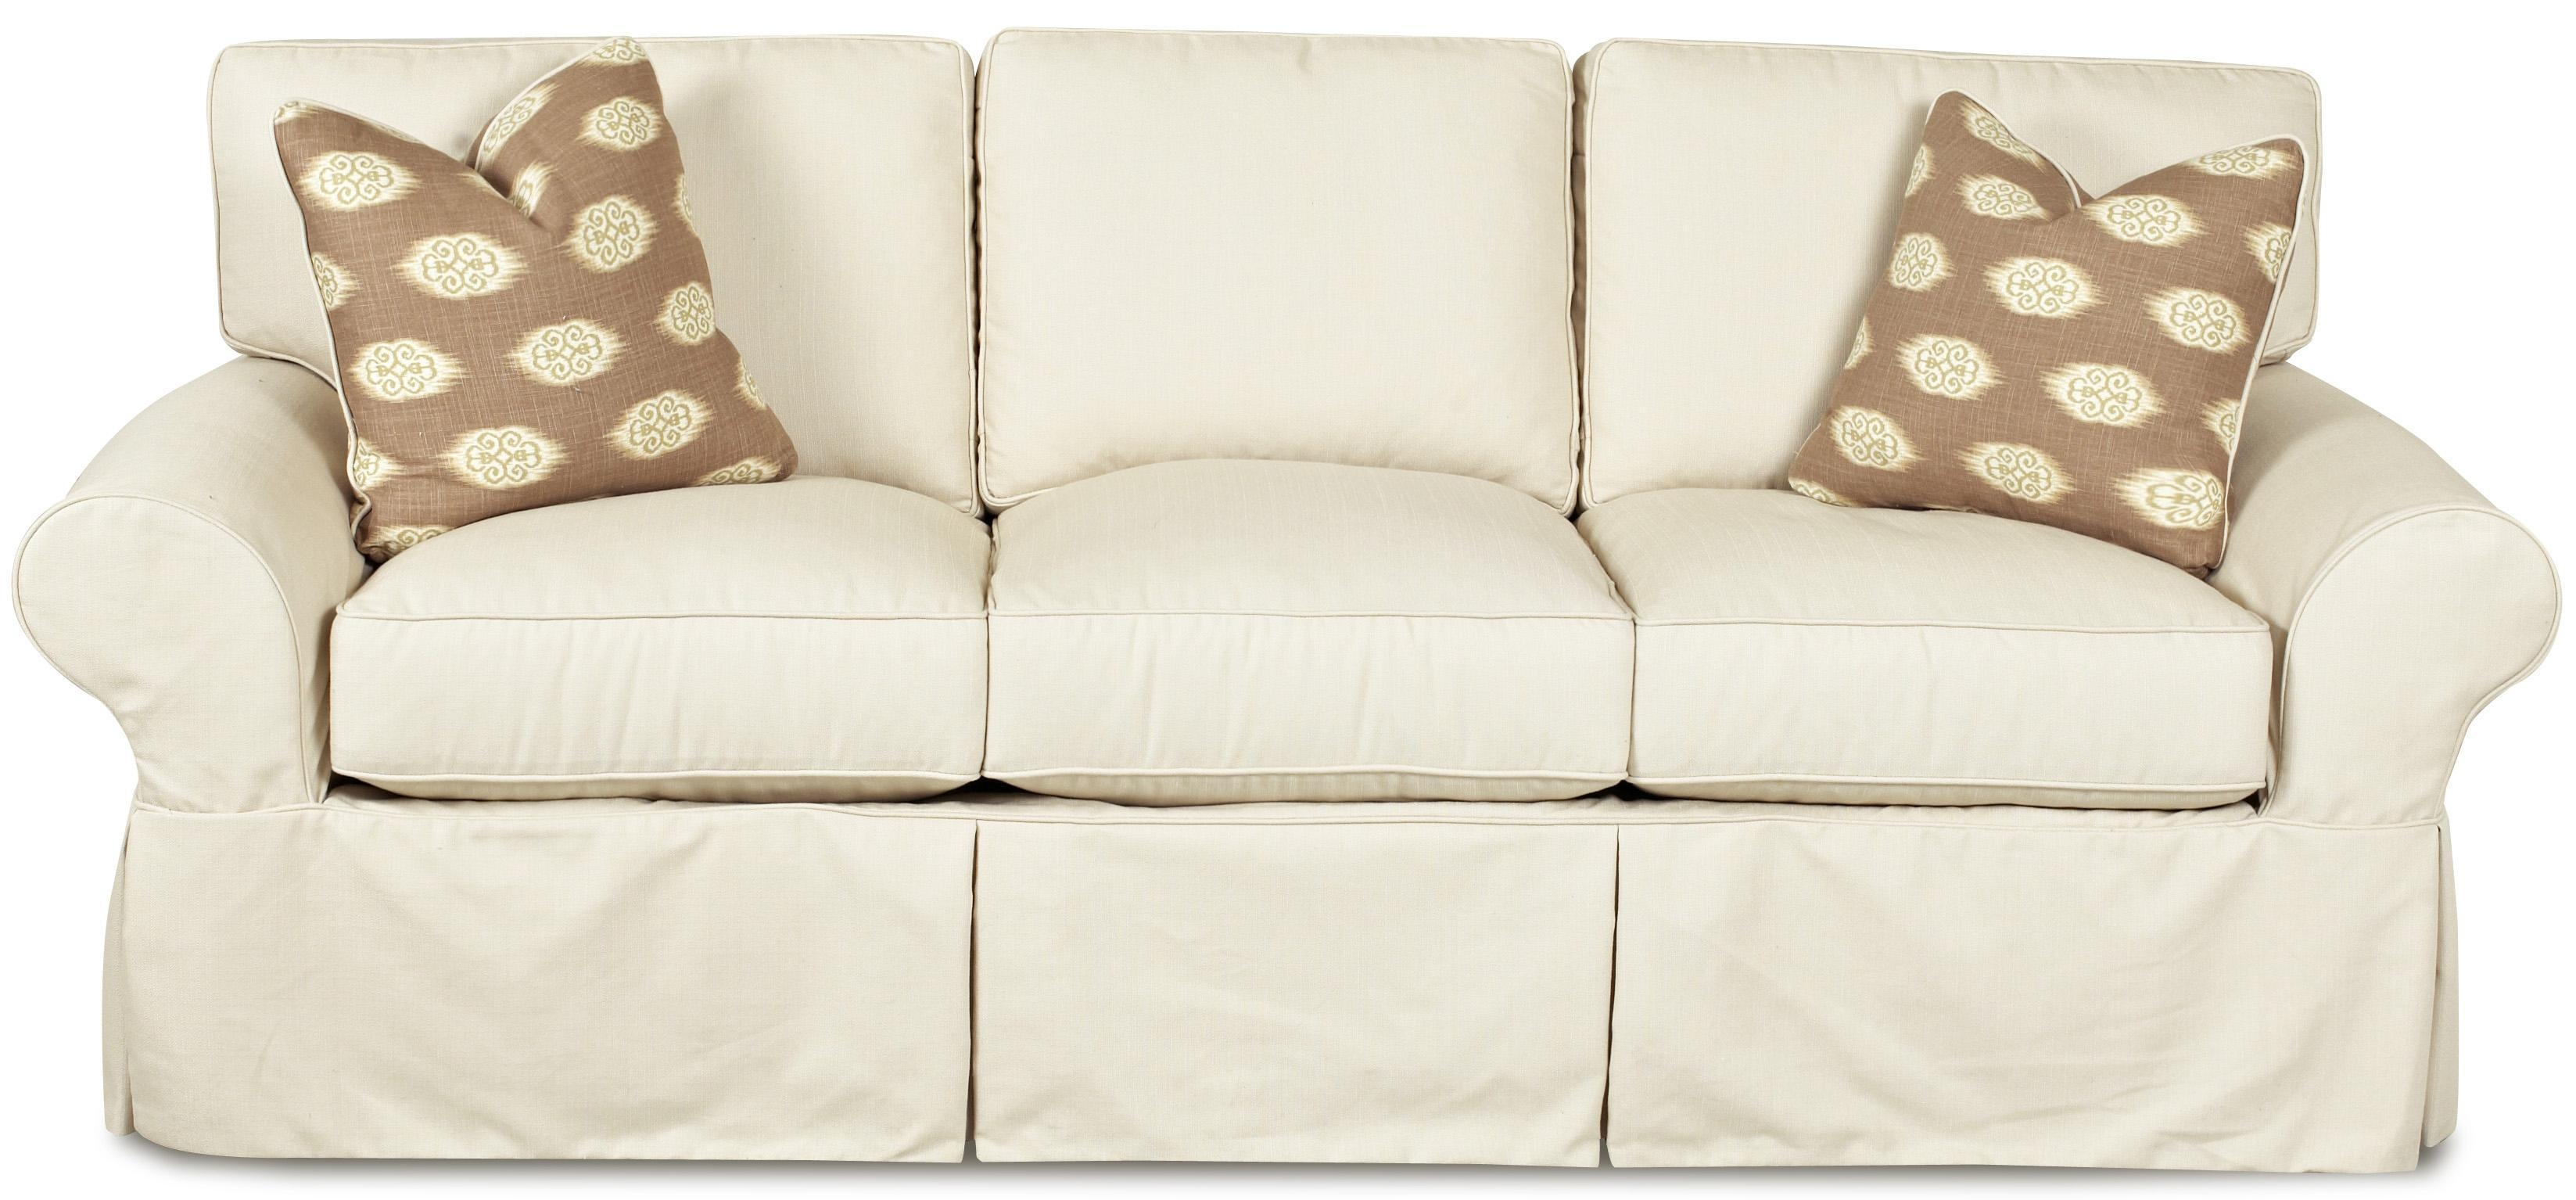 Furniture: Slipcovers For T Cushion Sofas | T Cushion Slipcovers Intended For Slipcovers For Sofas And Chairs (View 5 of 20)